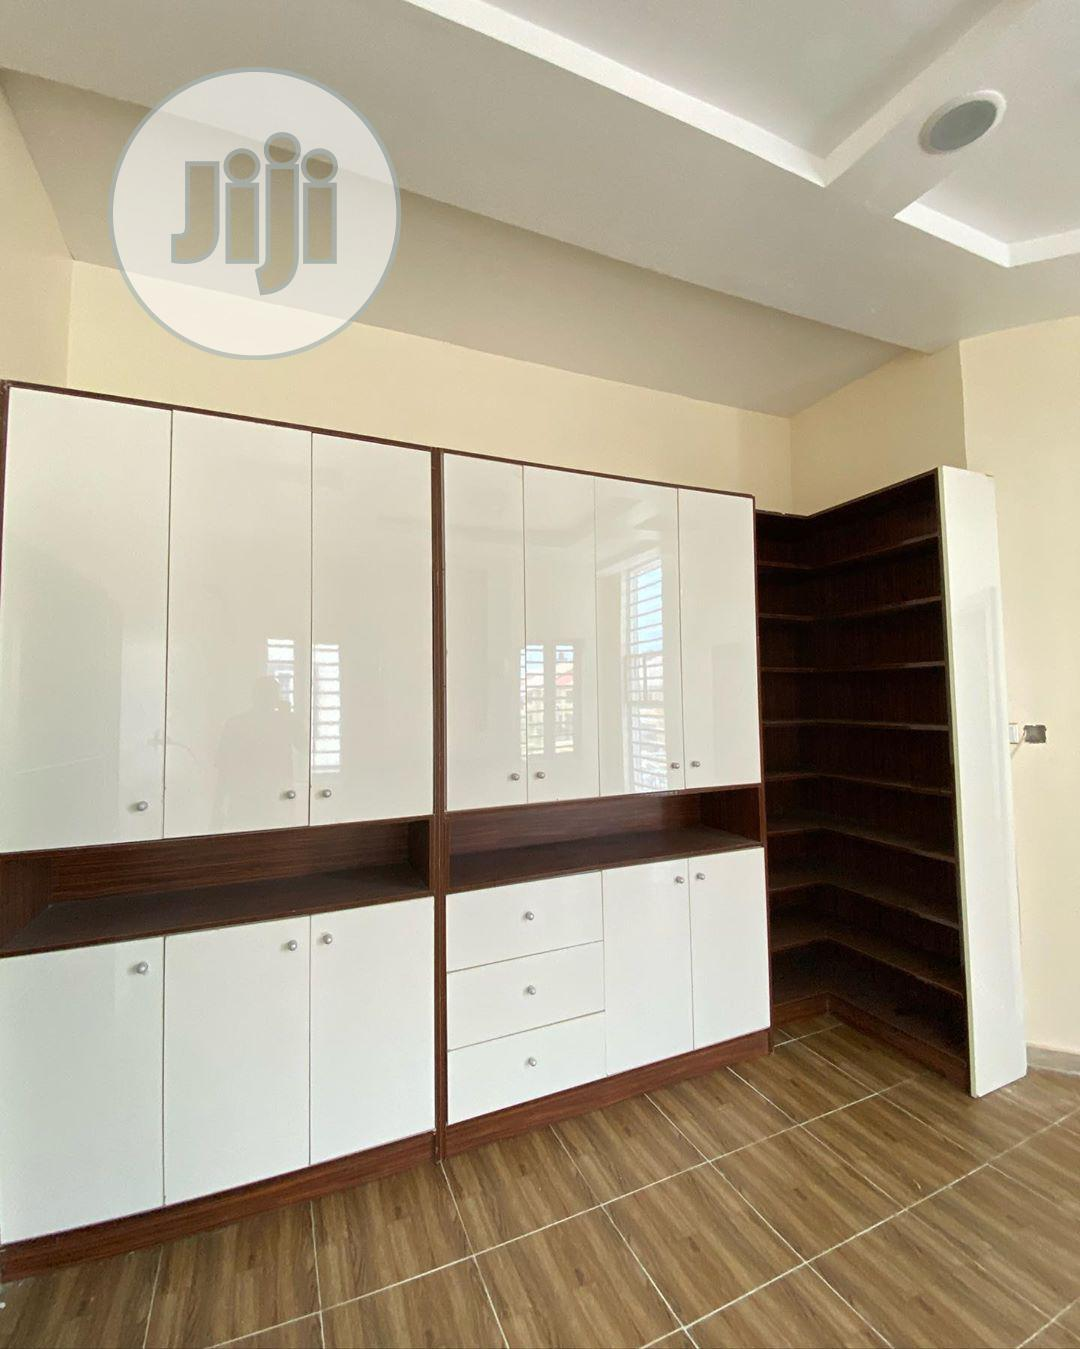 4bedroom Duplex For Sale | Houses & Apartments For Sale for sale in Lekki Phase 2, Lagos State, Nigeria